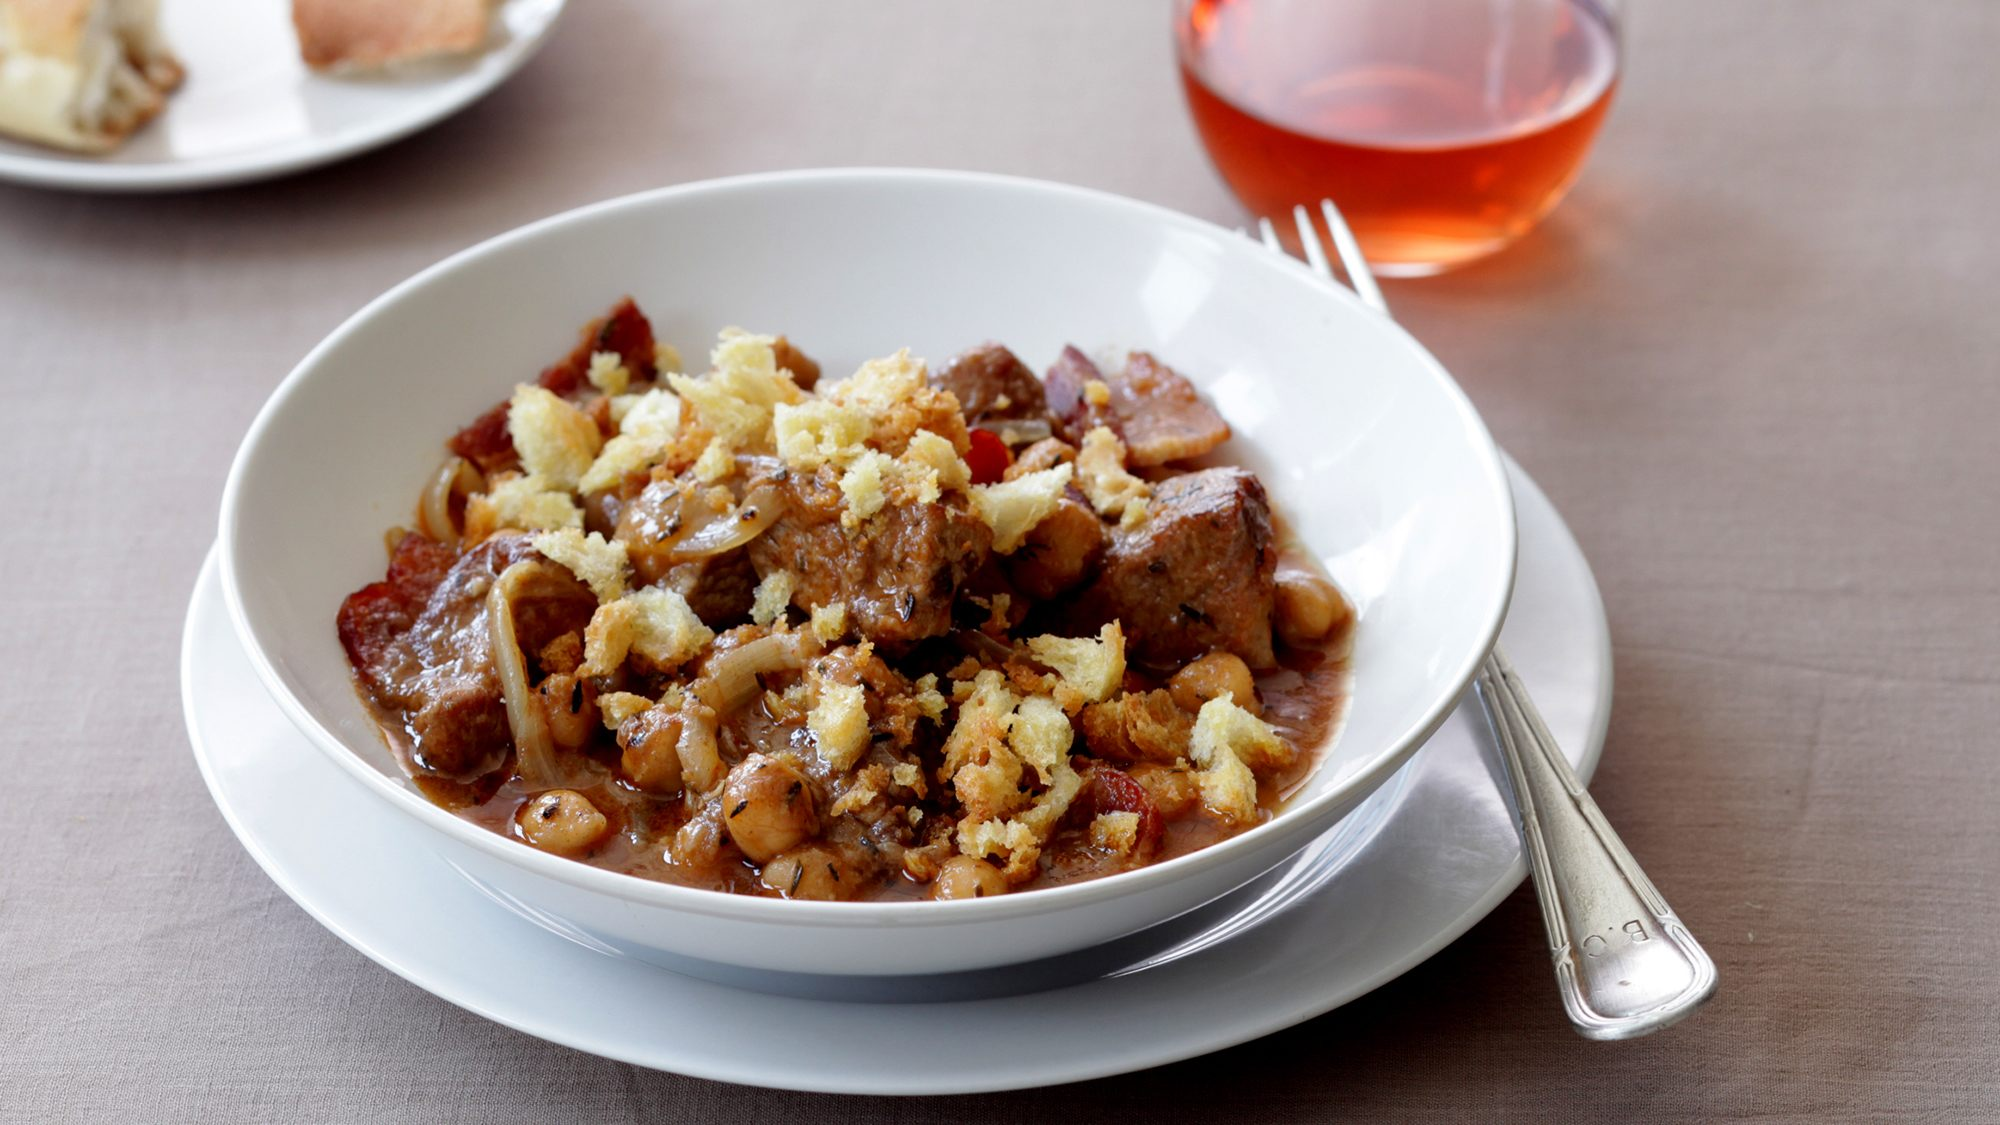 McCormick Goumet Roasted Cumin and Chickpea Cassoulet